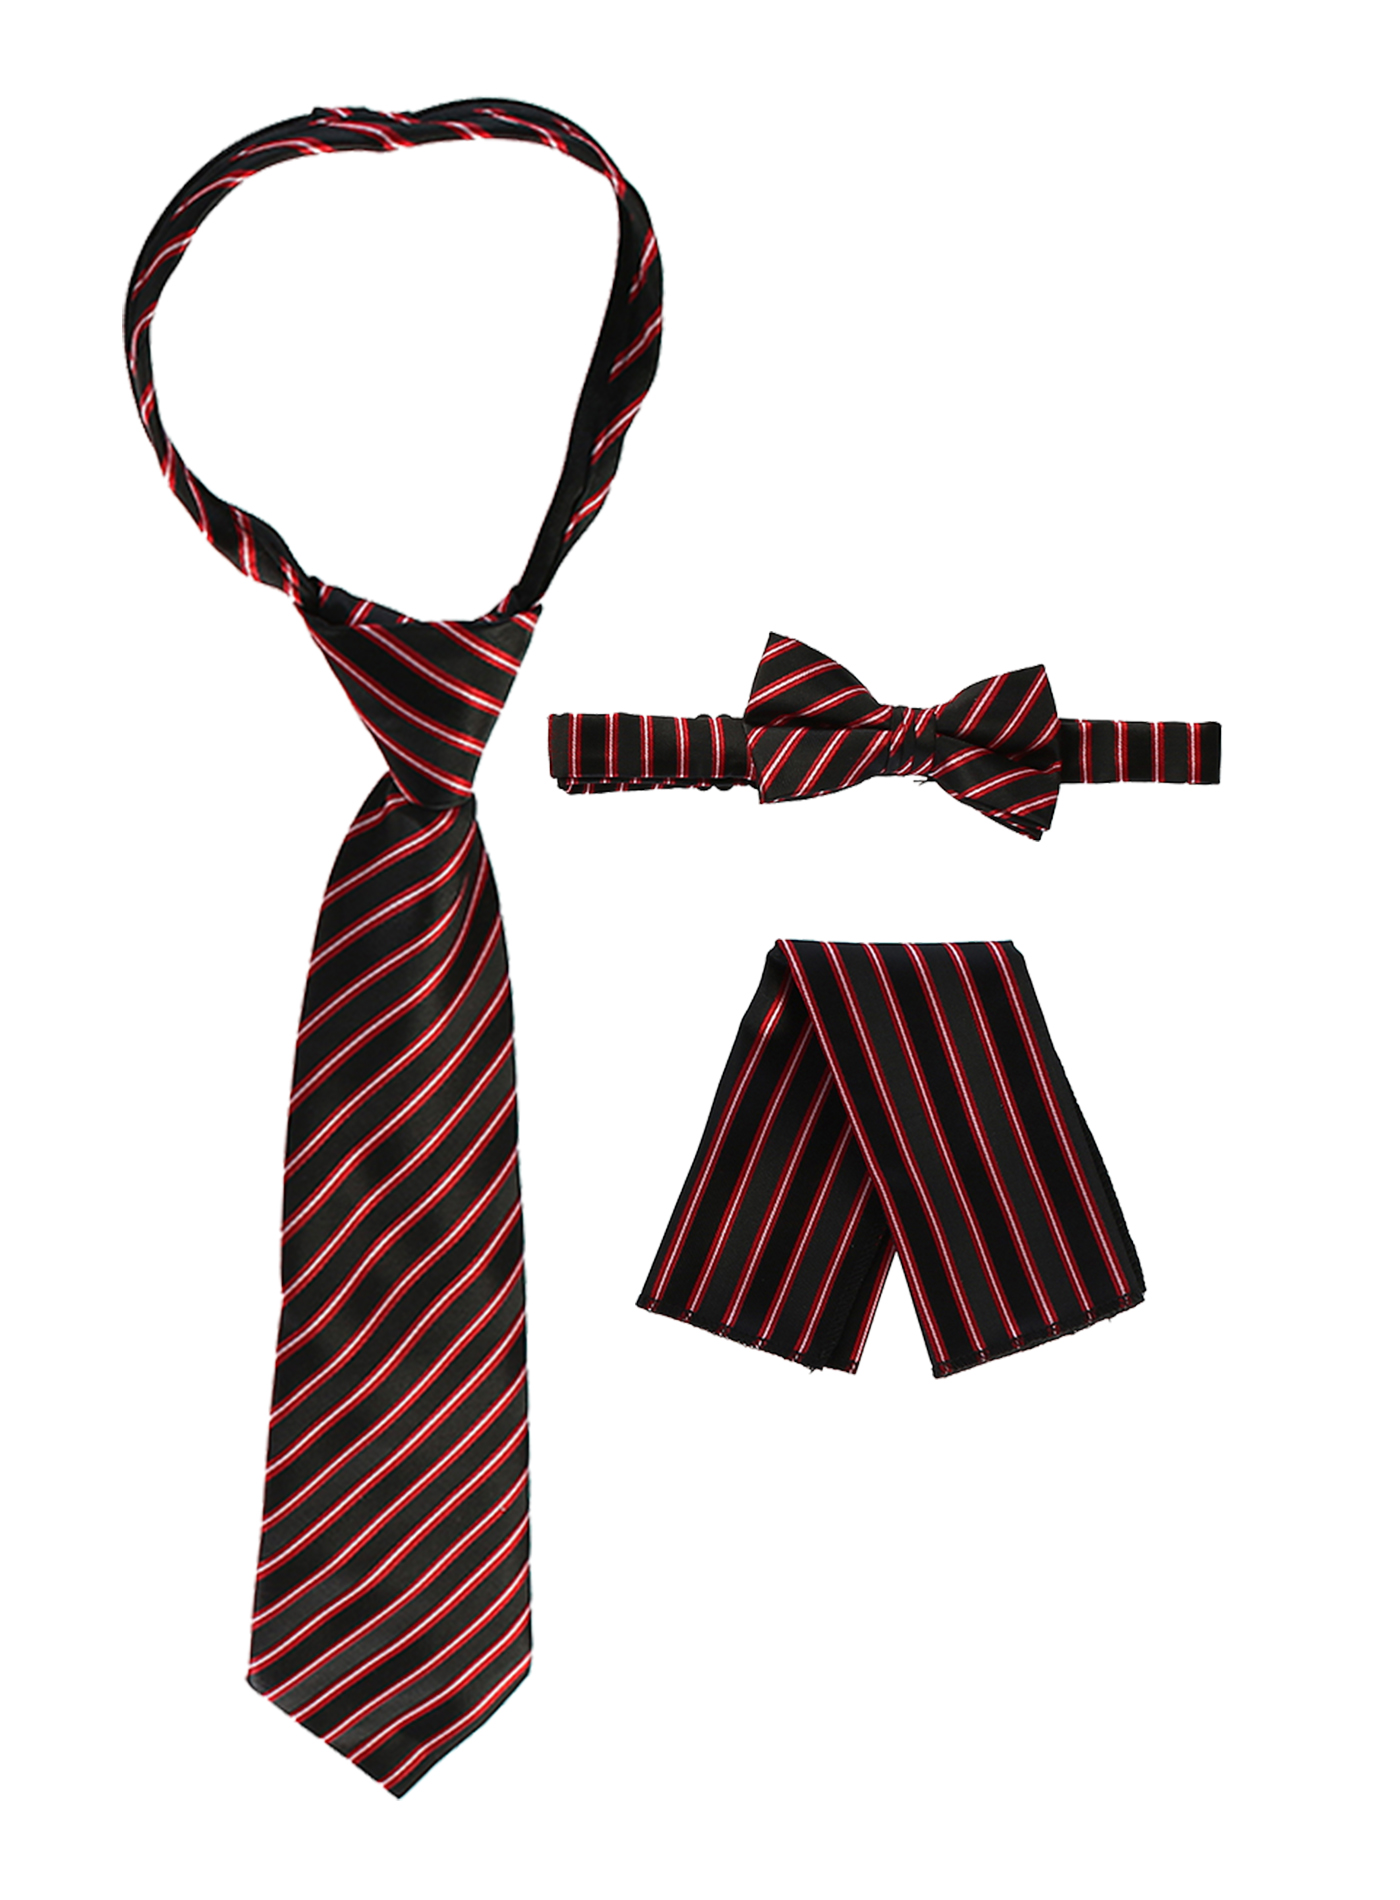 Gioberti Boy's Striped Zippered Tie, Bow Tie, and Handkerchief Set